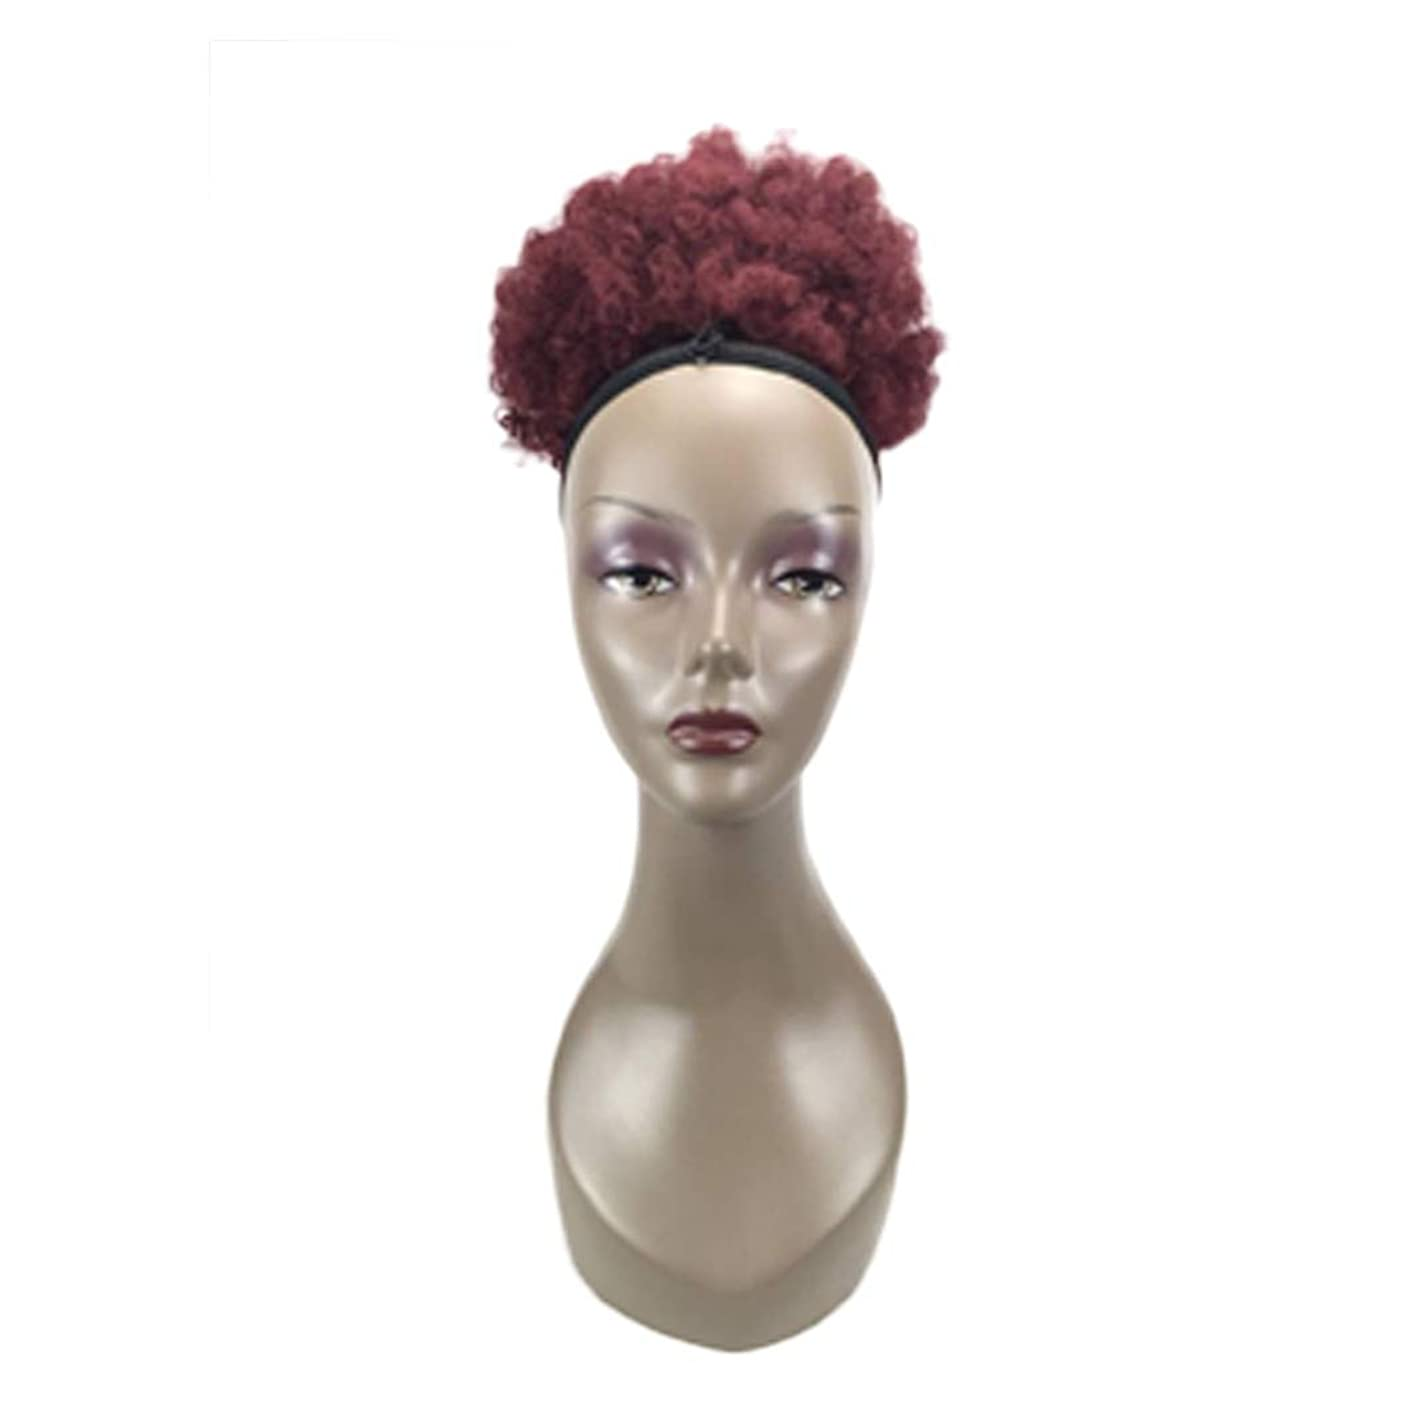 Lady Wig Black African Small Volume Fluffy Big Hair Bag Ponytail Wigs Stitching Diverse Zyqzw